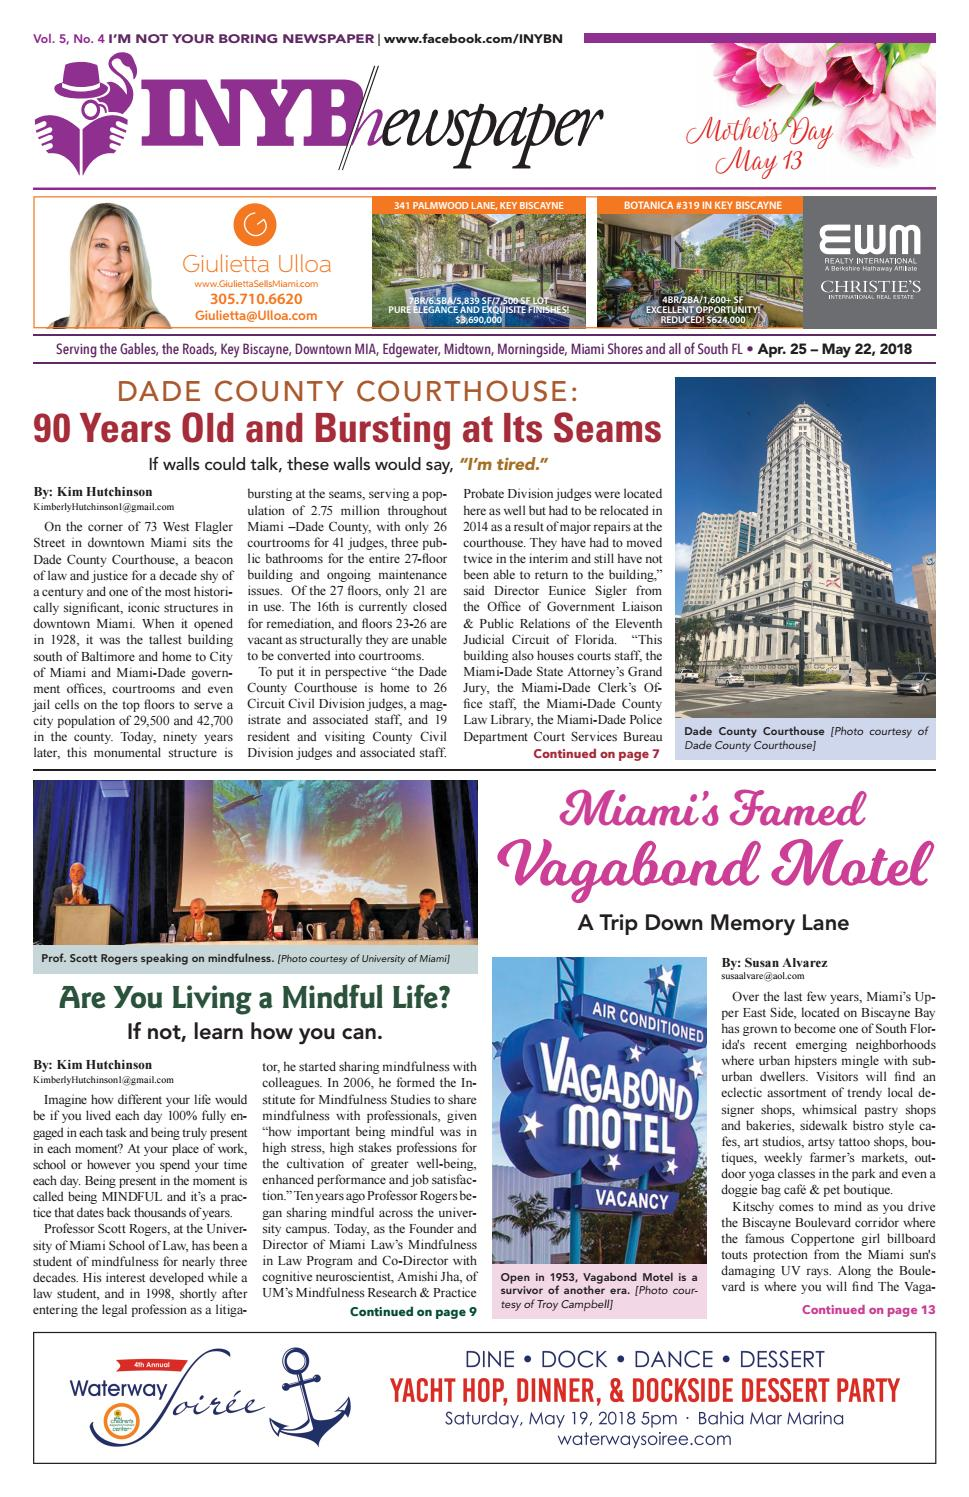 I'm Not Your Boring Newspaper April 25 2018 by INYBN - issuu